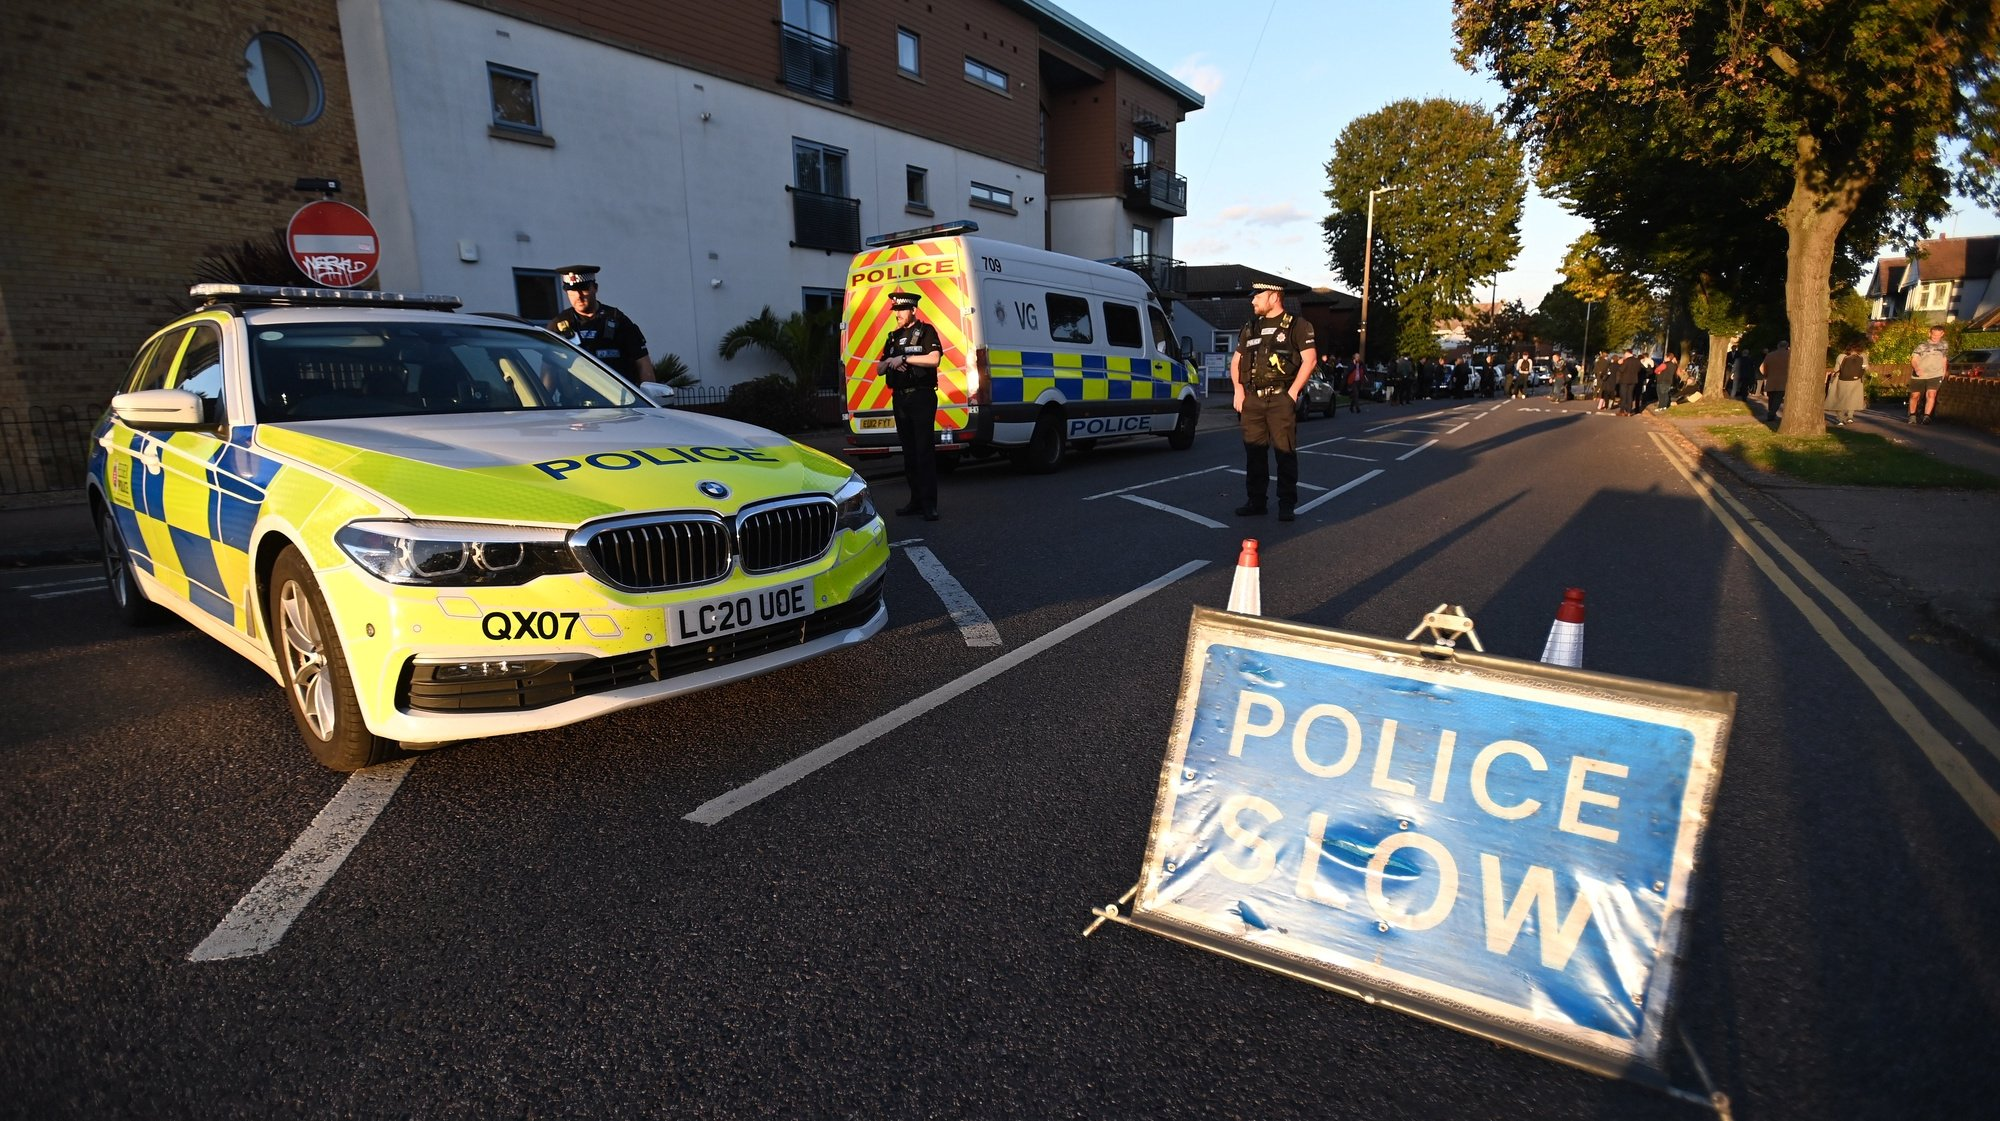 epa09525814 A police cordon at the scene of a crime where MP for Southend West, Sir David Amess, was stabbed to death in Leigh-on-Sea, Britain, 15 October 2021. Amess was reportedly stabbed several times at a church in Leigh-on-Sea while holding a constituency surgery and later died of his injuries.  EPA/ANDY RAIN